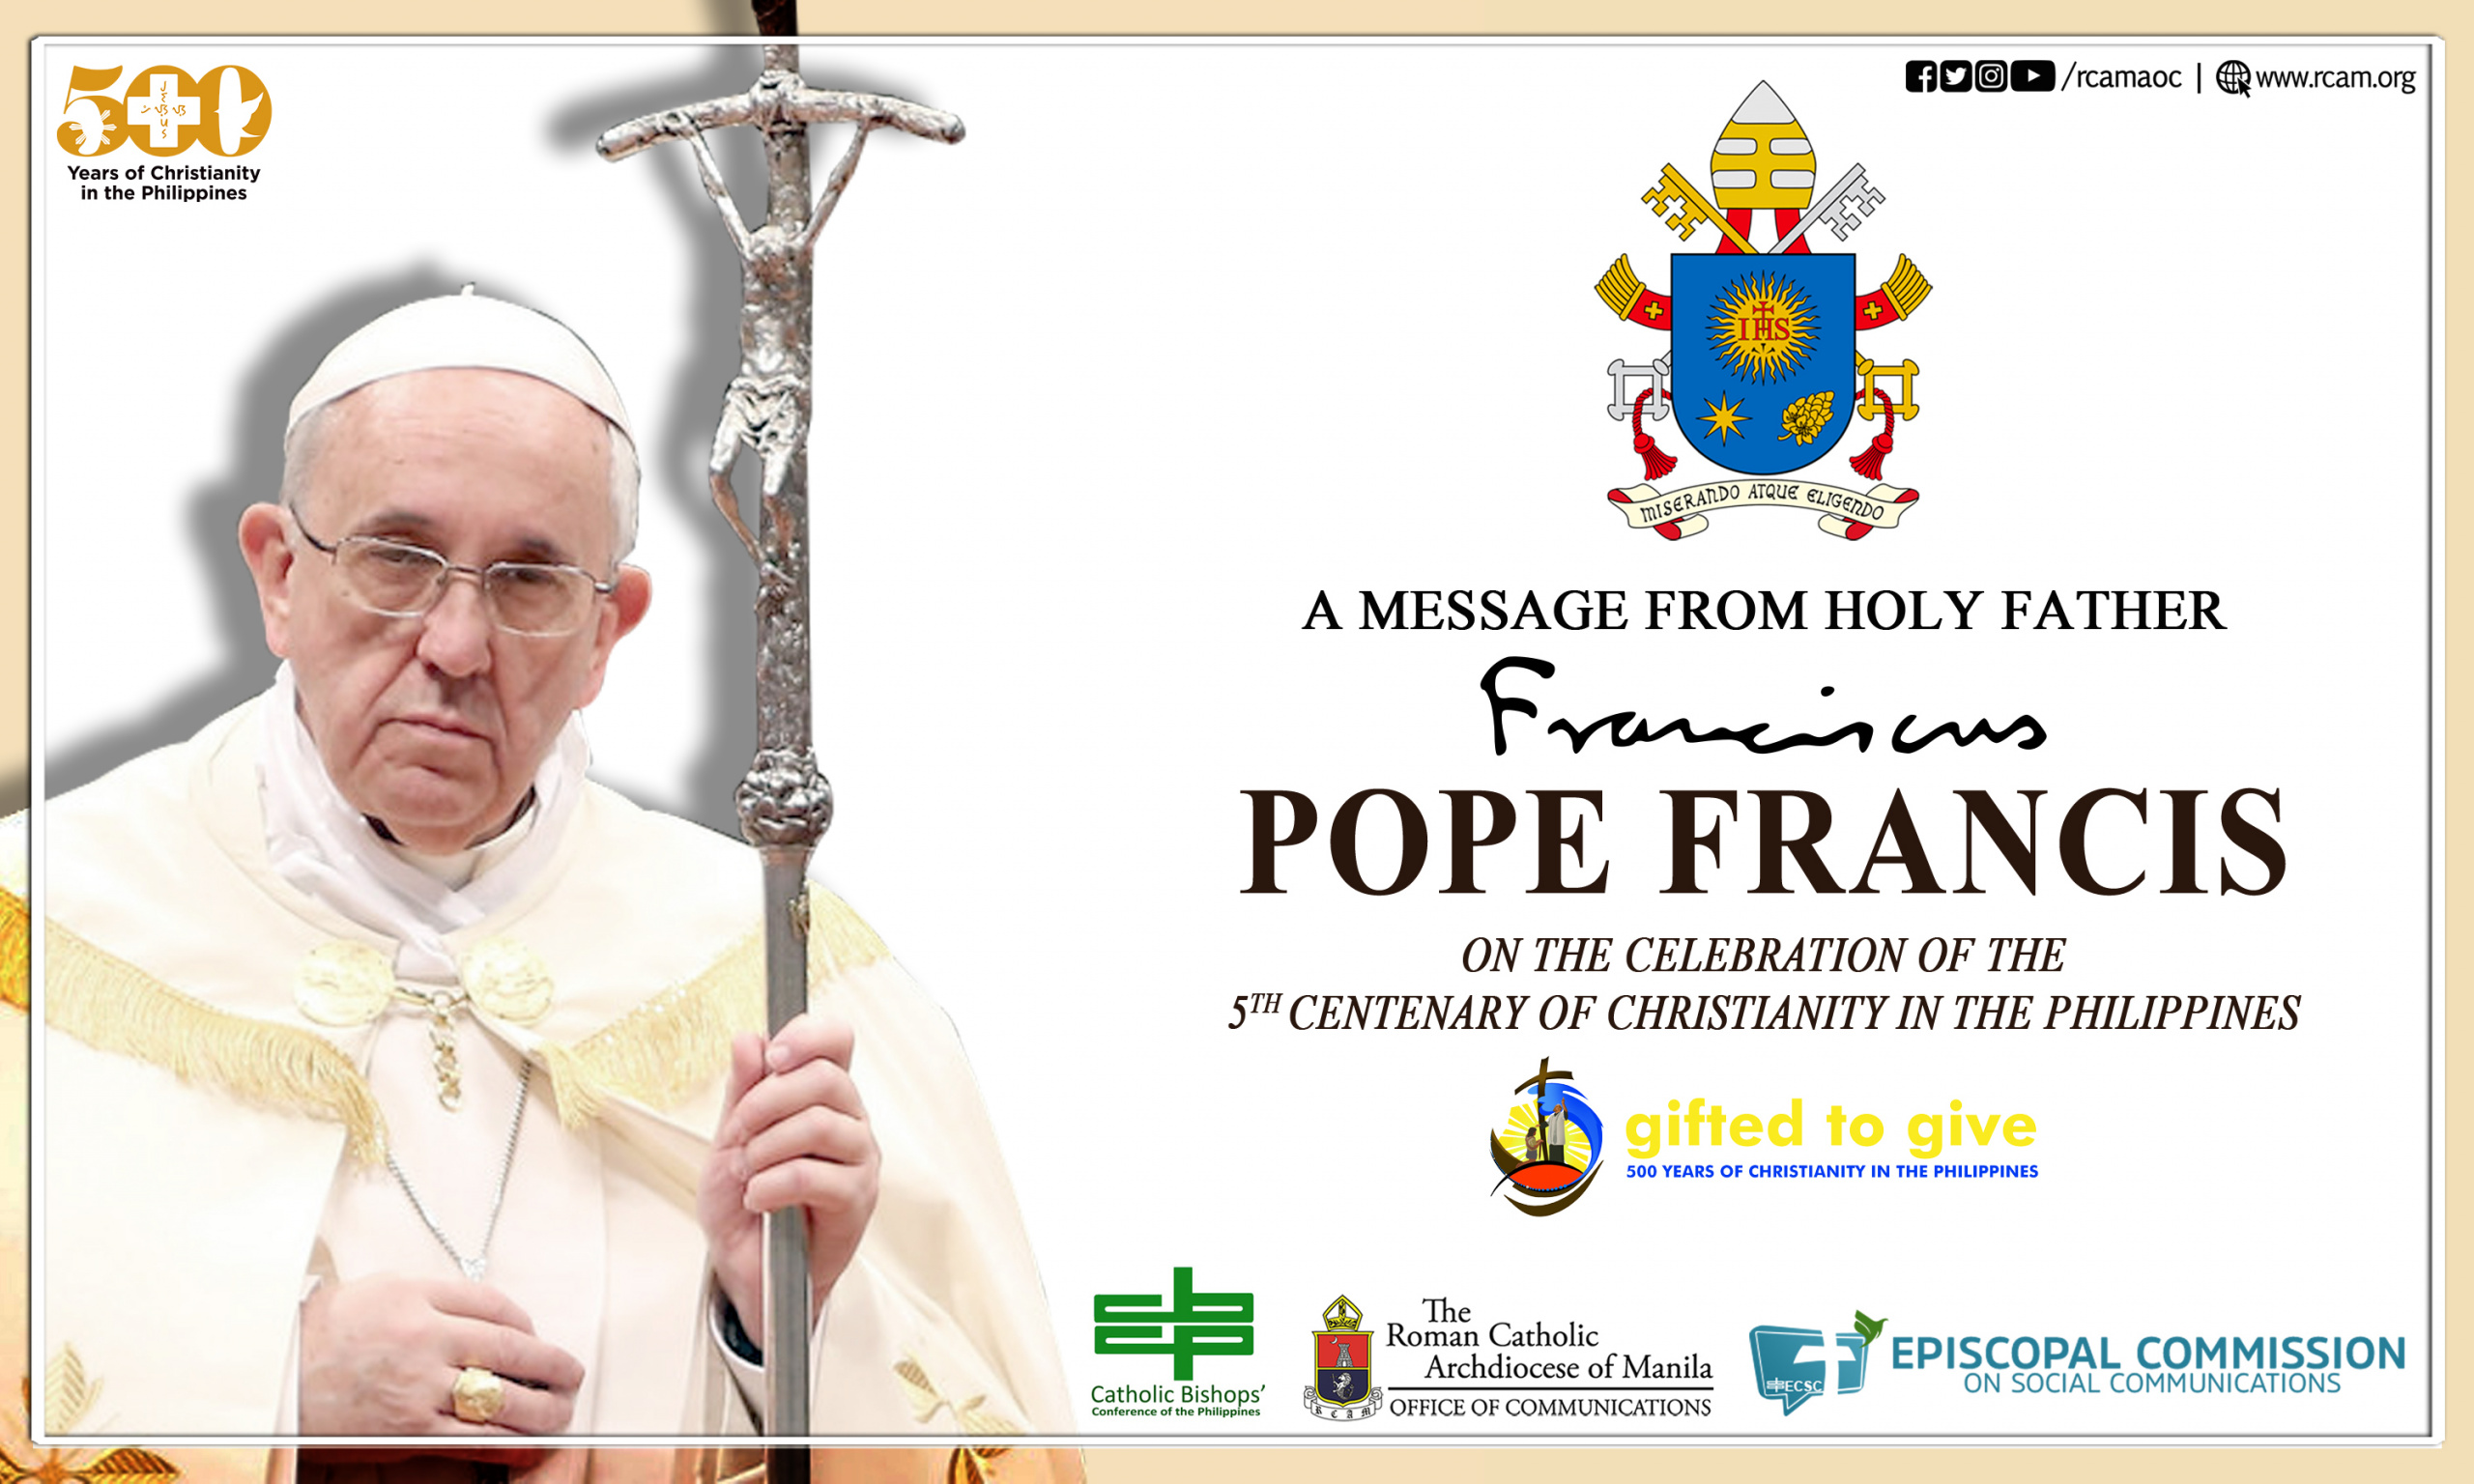 Message of Pope Francis for the Jubilee Celebration of 500 Years of Christianity in the Philippines